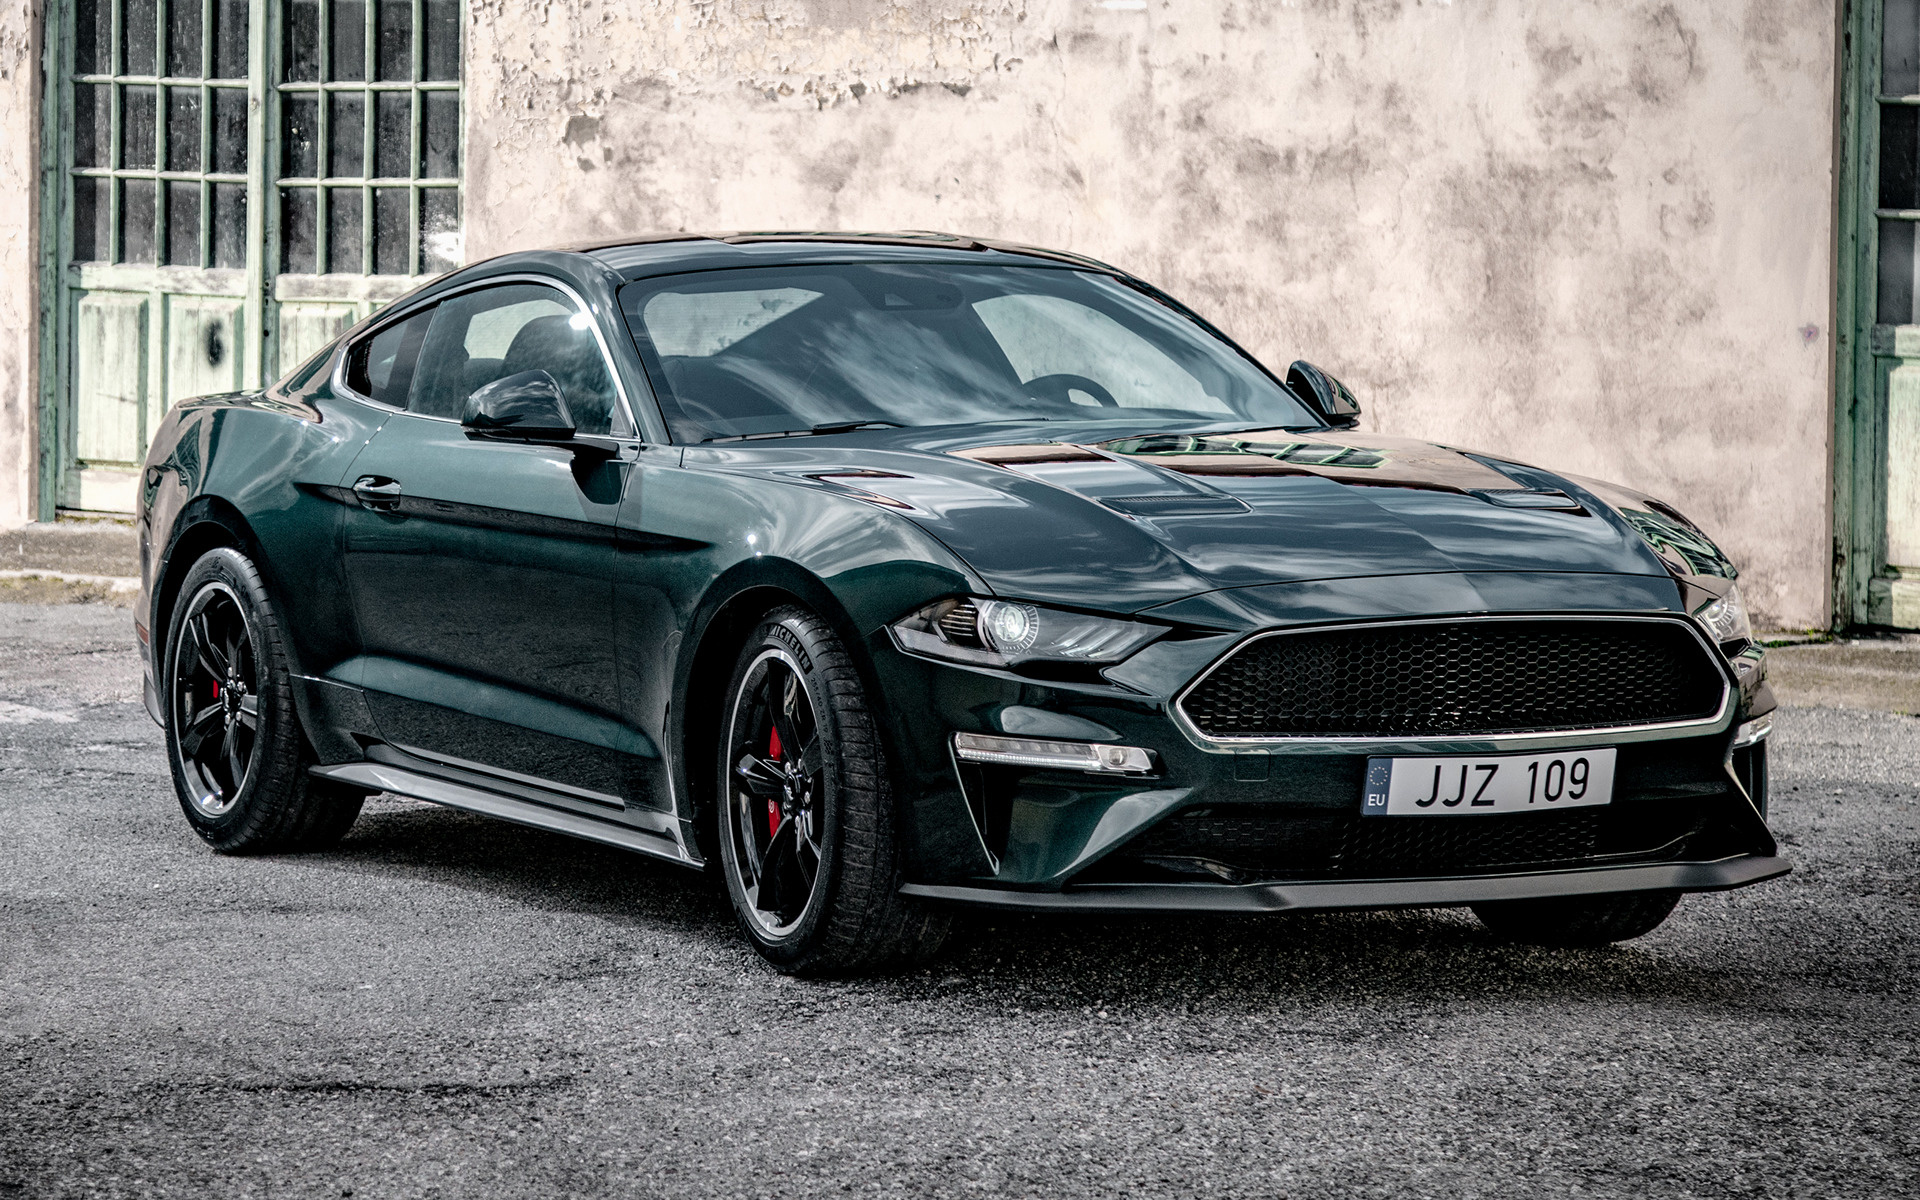 2019 Ford Mustang Bullitt (EU) - Wallpapers and HD Images ...